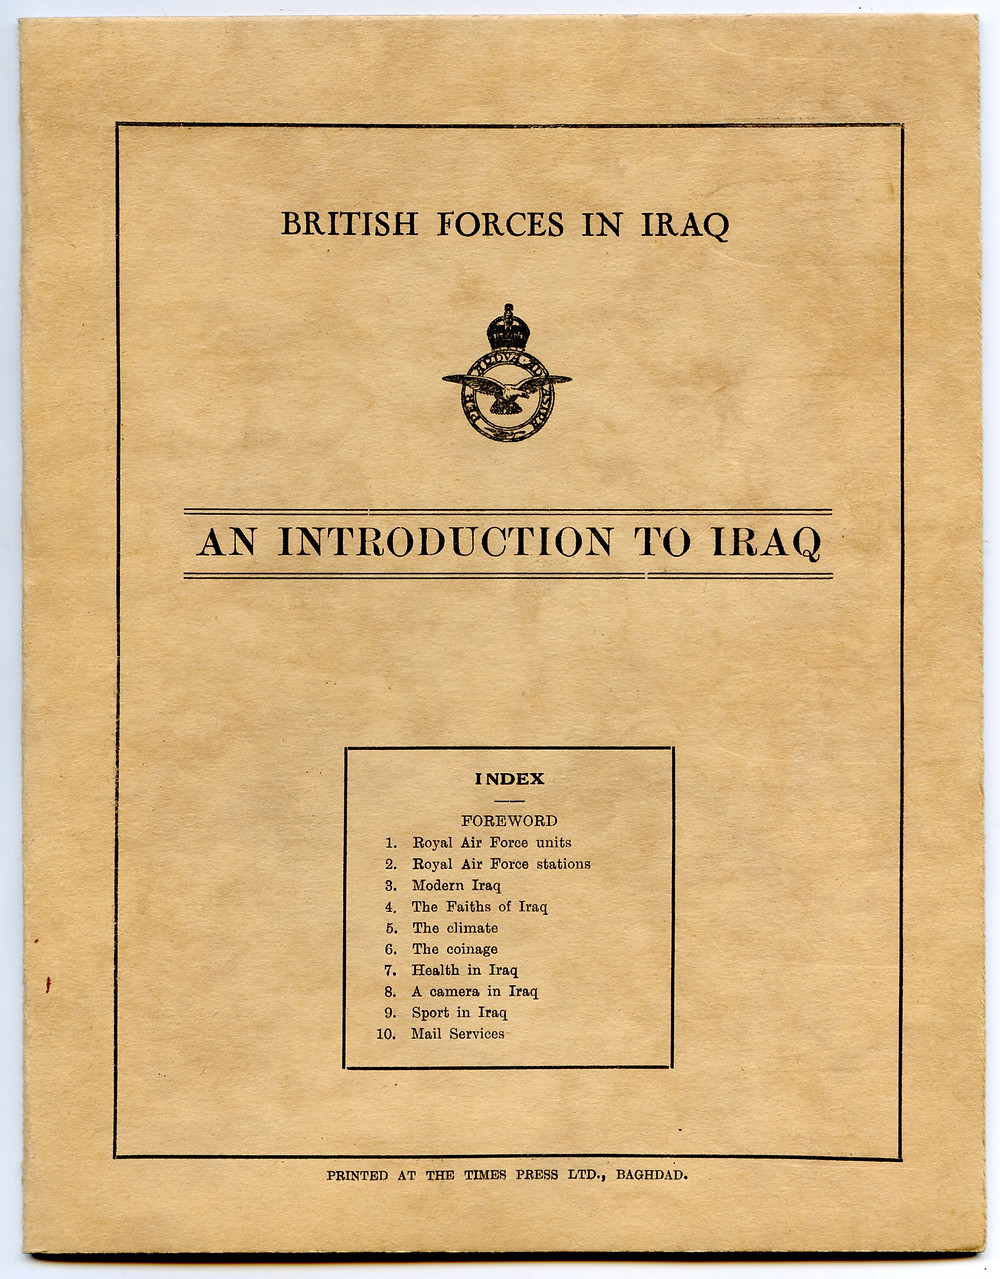 A booklet published in 1935, explaining to RAF personnel serving in Iraq the operation and facilities available at RAF Hinaidi, Baghdad.